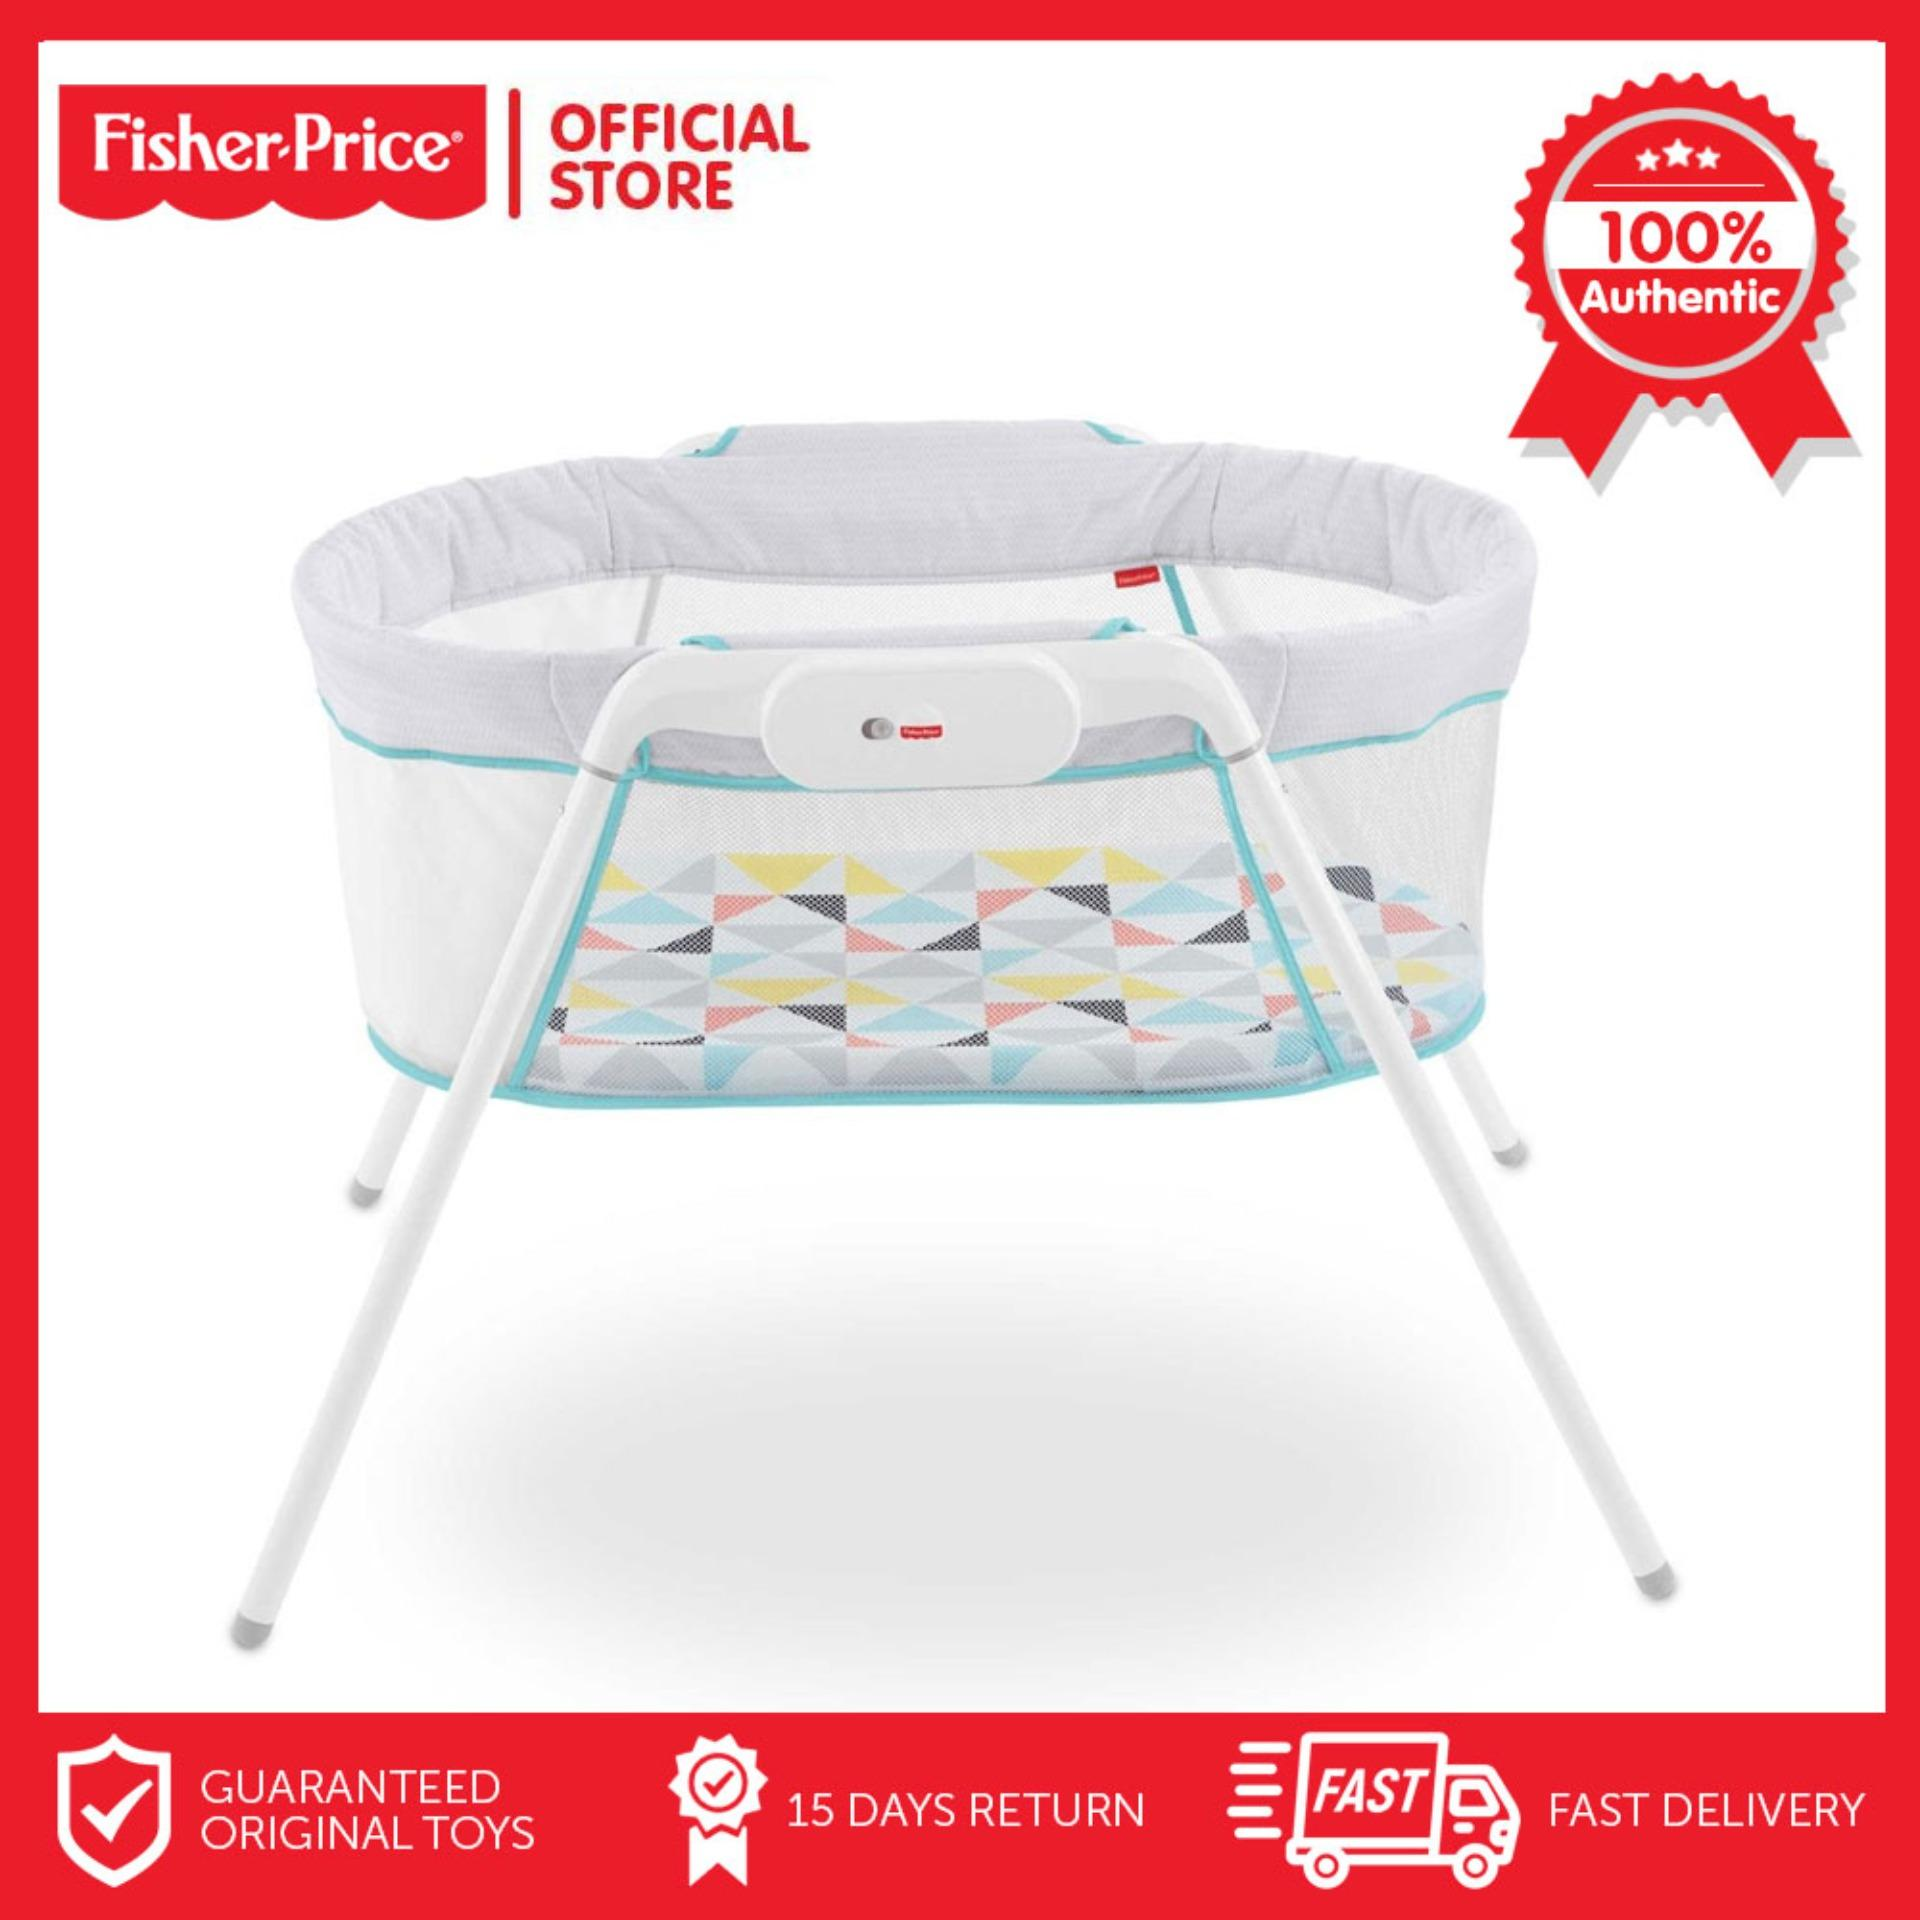 Newborn Bassinet Best Fisher Price Stow N Go Cosleeper Crib